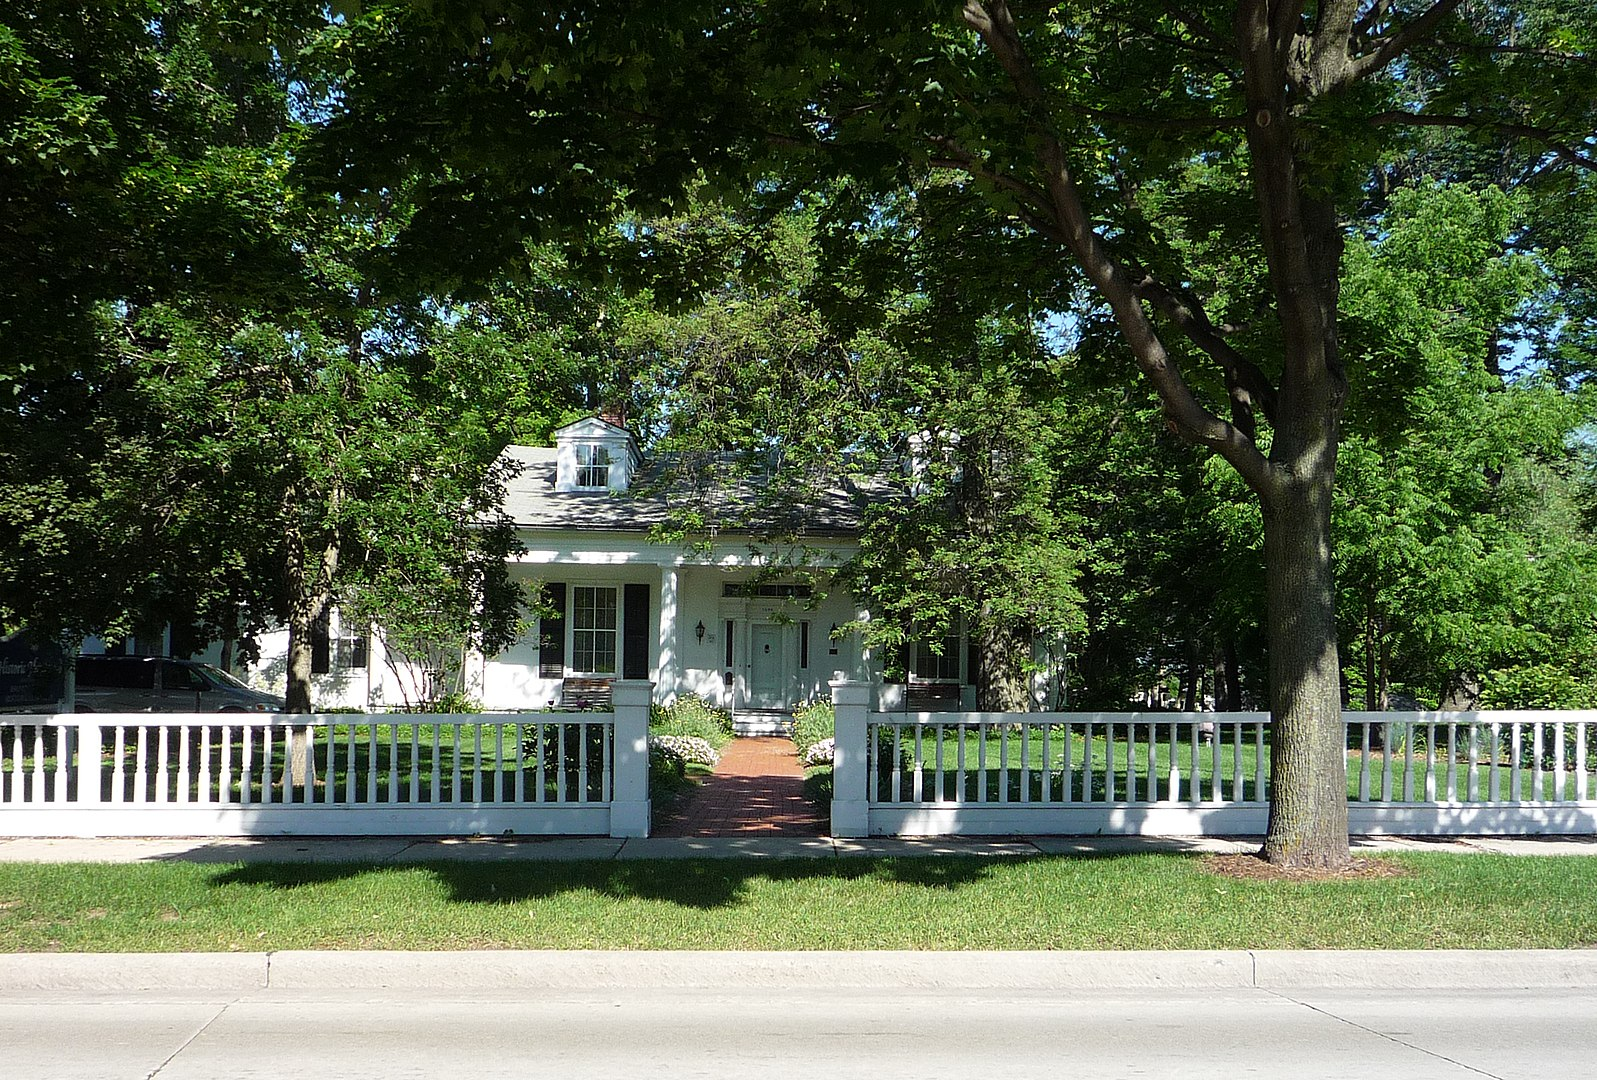 Hazelwood Historic House Museum (built in 1837) and home of the Brown County Historical Society